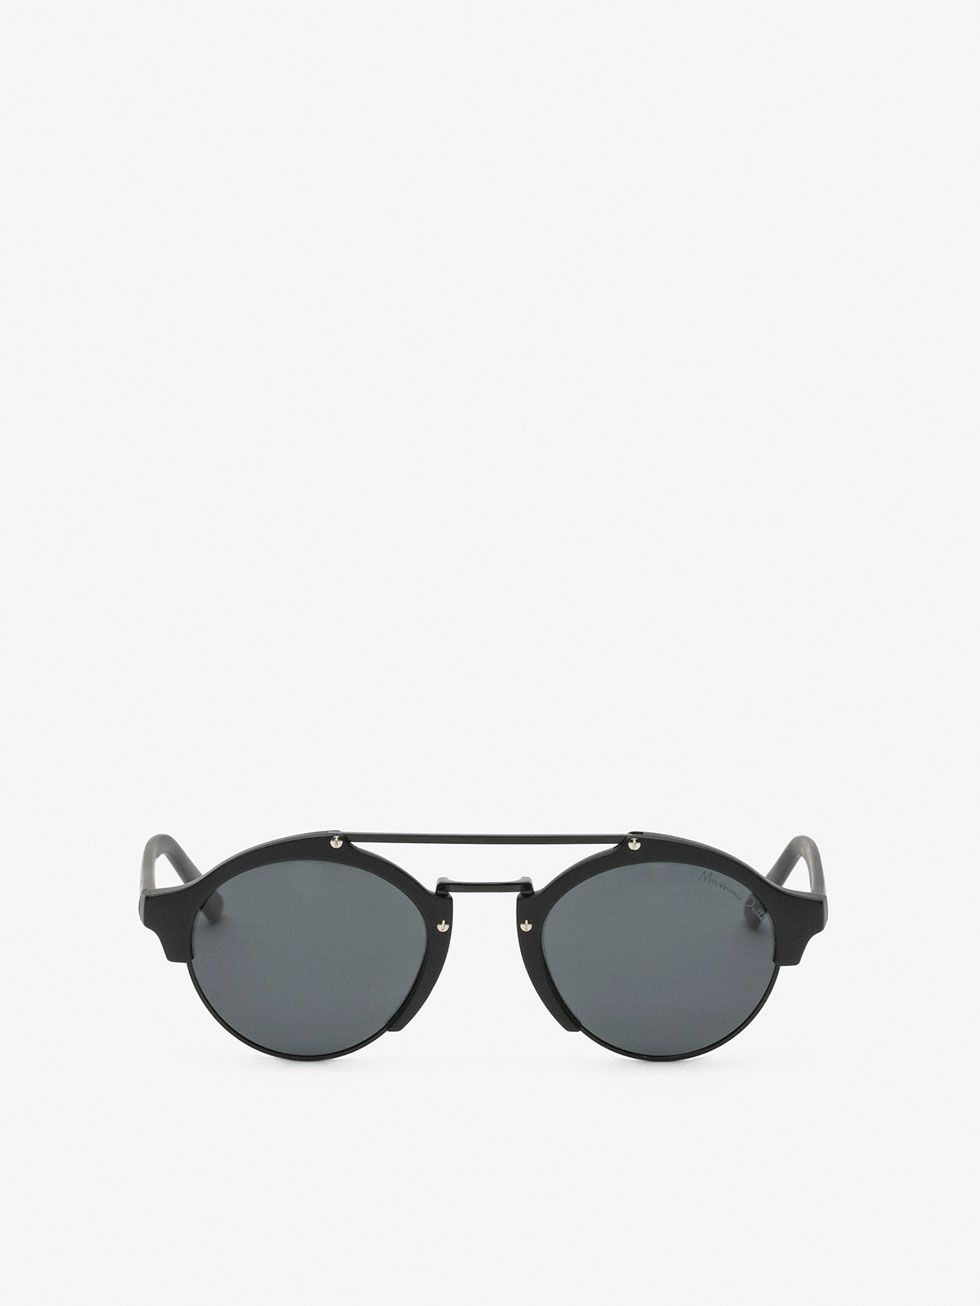 41b436fee17d3 Autumn winter 2016 Men´s SOFT POLARISED SUNGLASSES at Massimo Dutti for  64.95. Effortless elegance!